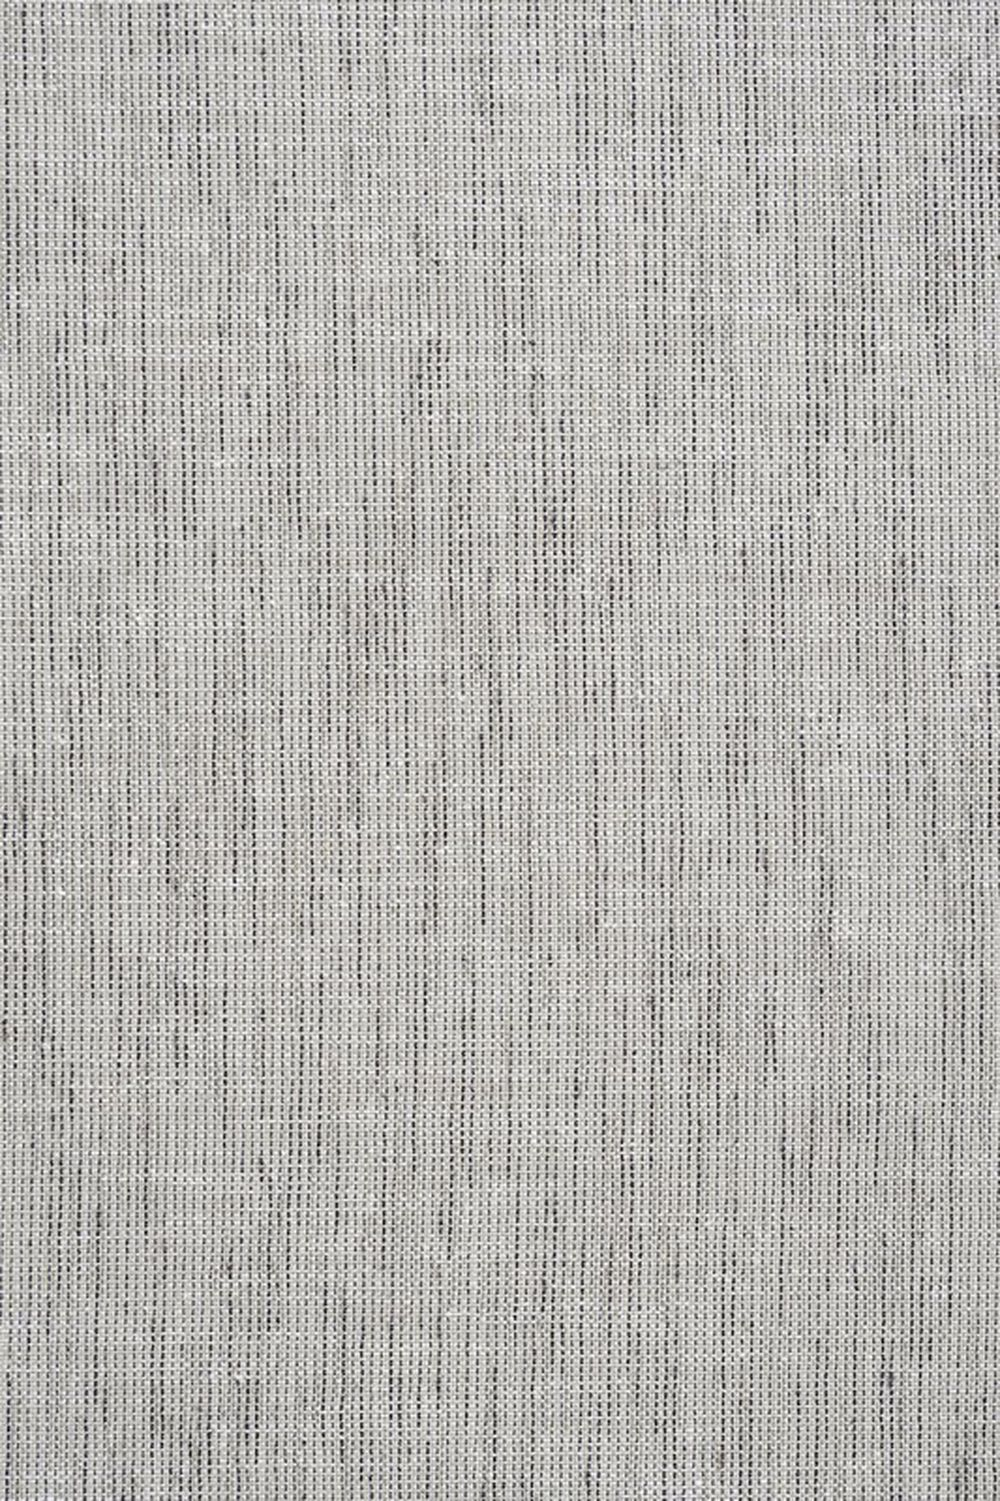 Photo of the fabric Shoji Dove Grey swatch by Mokum. Use for Sheer Curtains. Style of Plain, Sheer, Texture